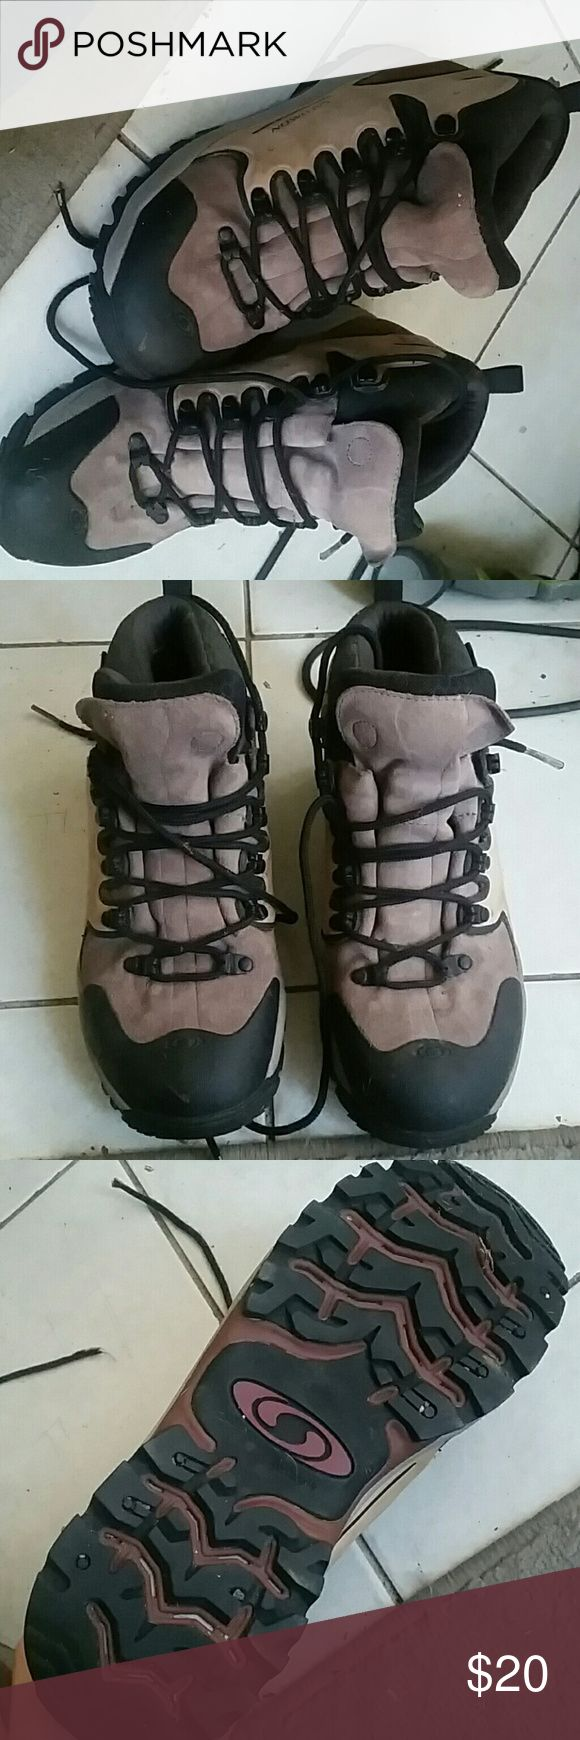 Salomon winter boots Size 9 in women's, super durable winter outdoor boots. Black and purplish suede. Messy but not worn out. Salomon Shoes Winter & Rain Boots